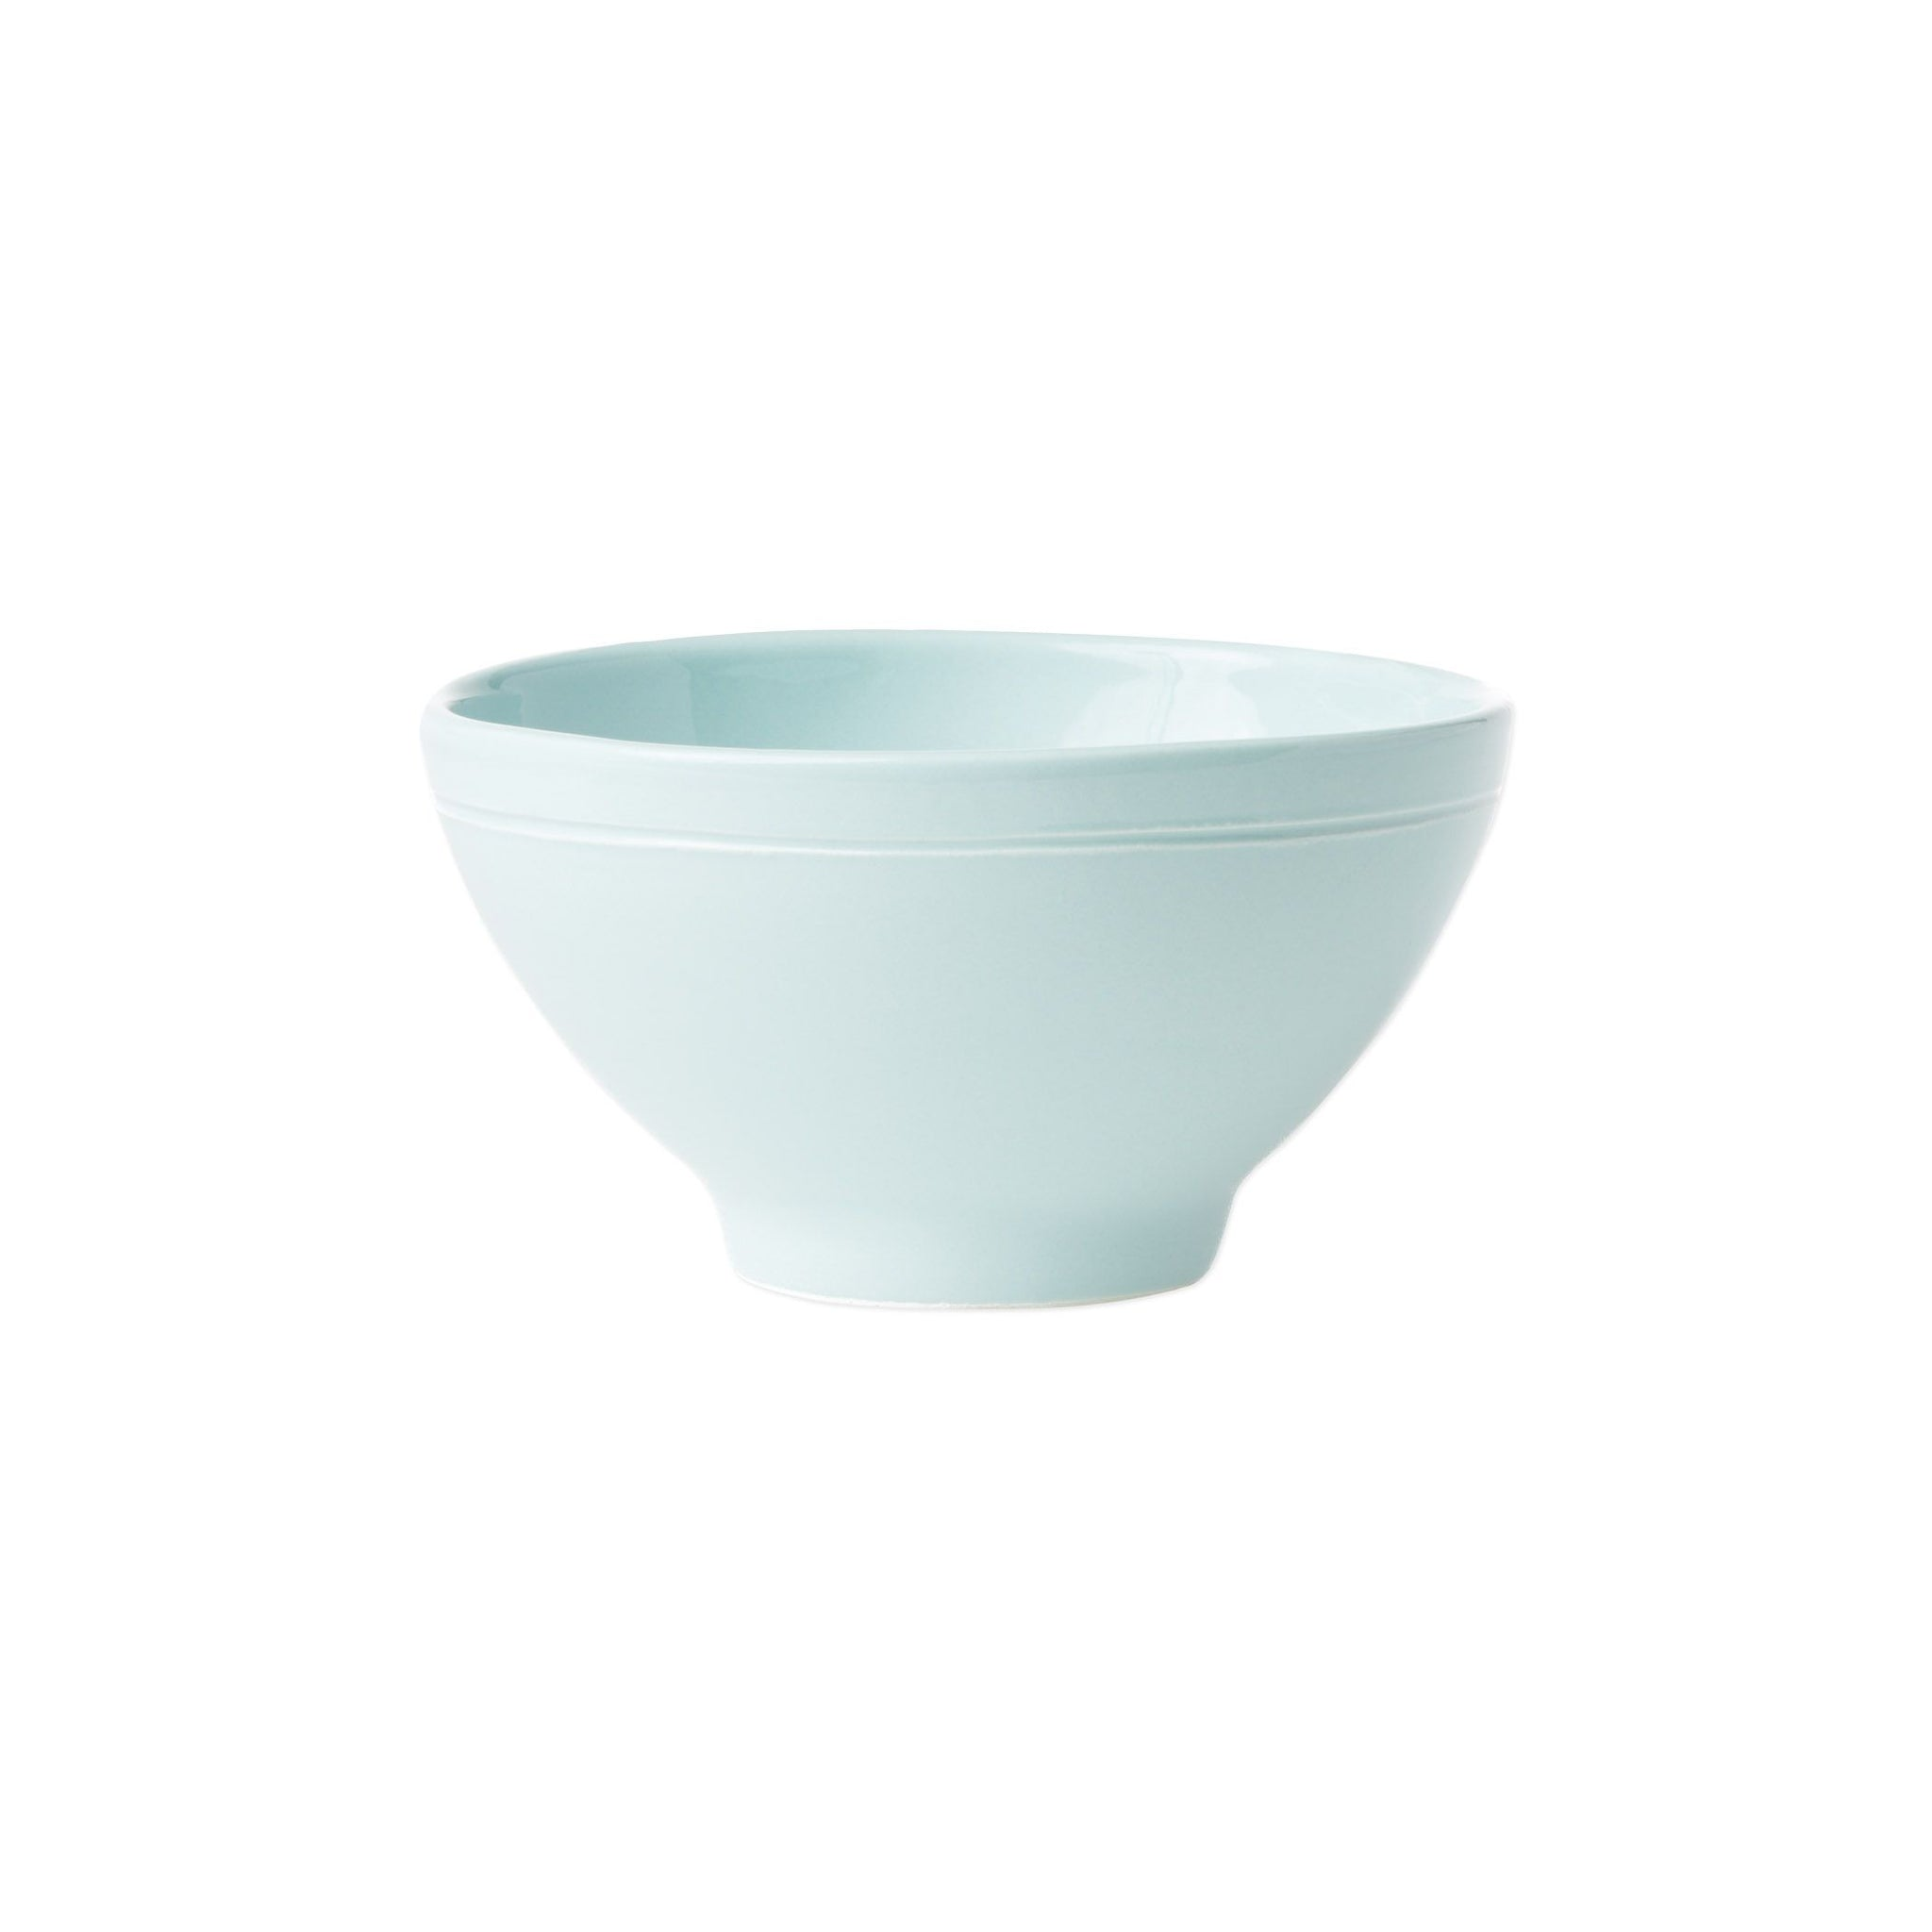 Fresh Cereal Bowl Aqua - Wilson Lee